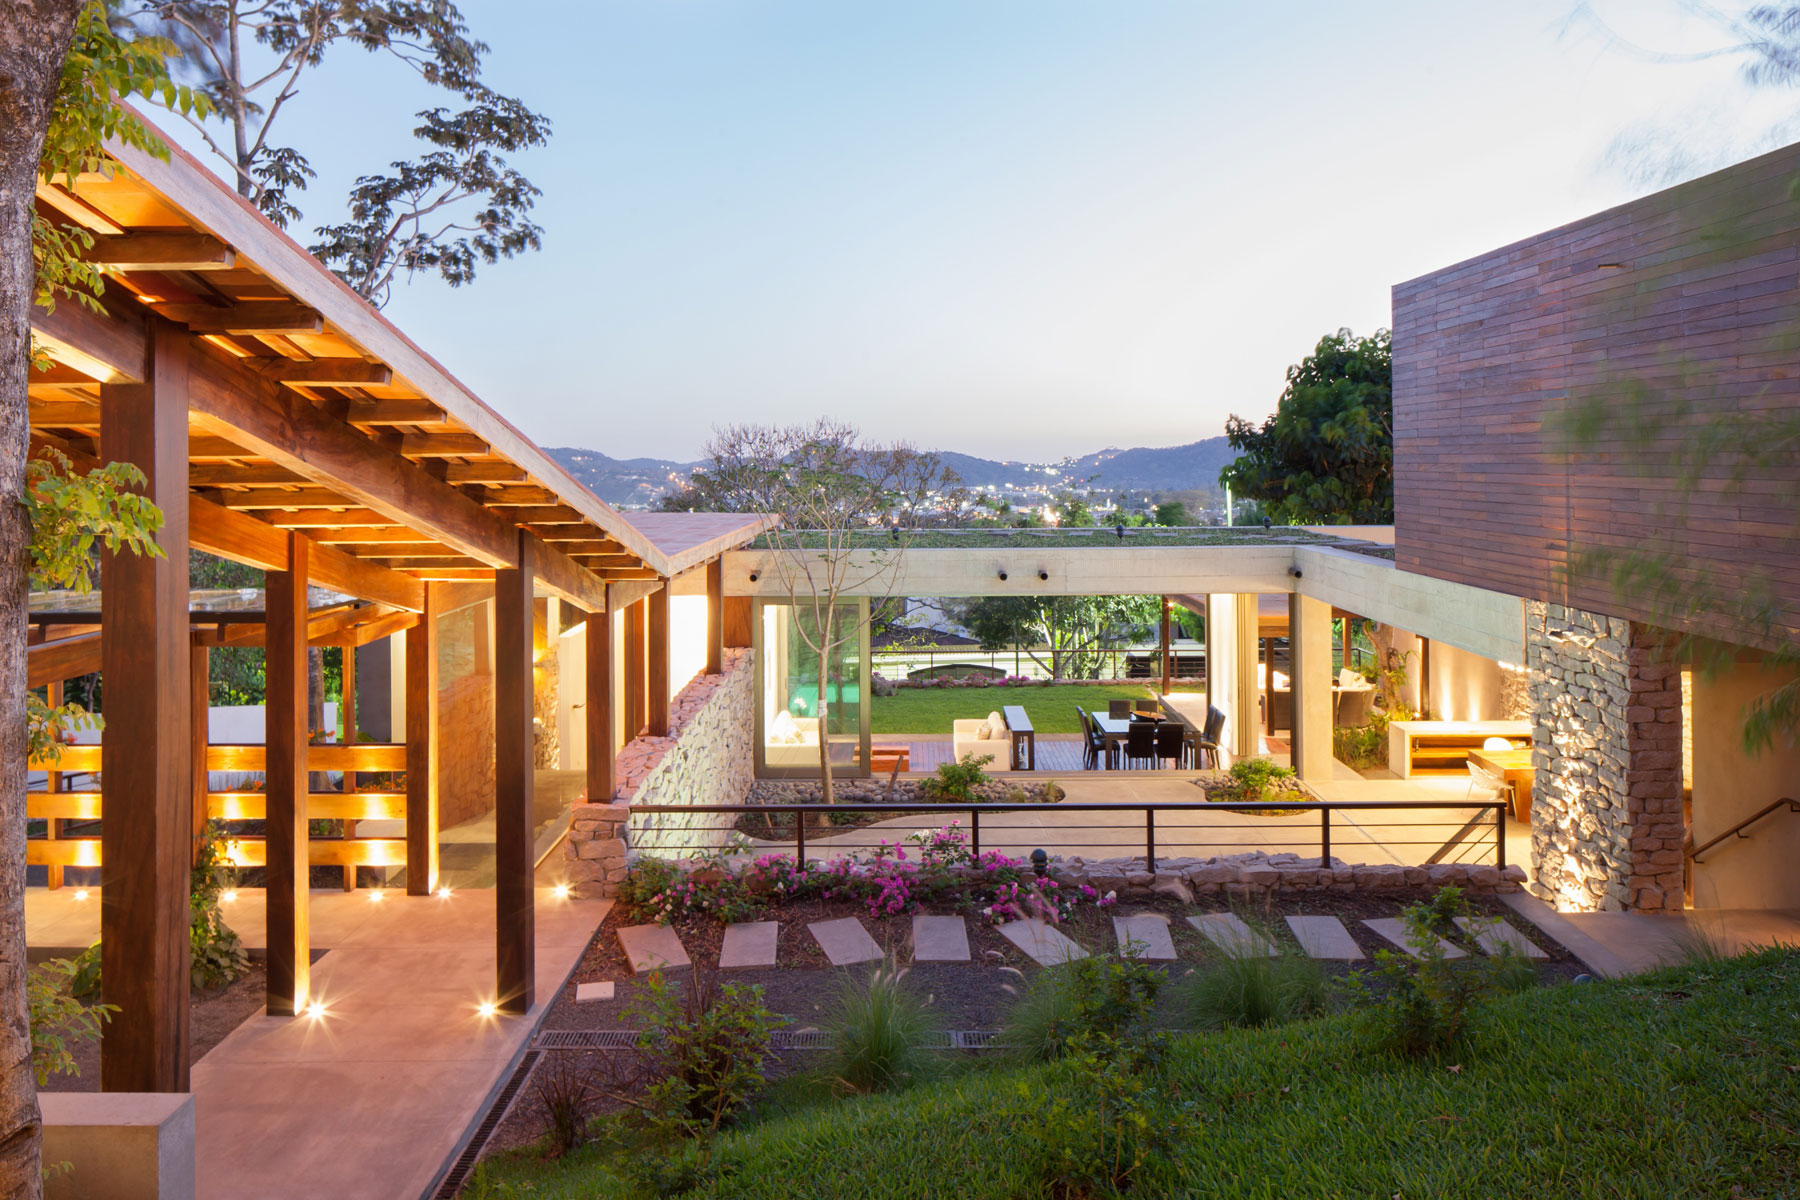 Modern, Rustic Sensation Of Garden House in El Salvador by Cincopatasalgato-19